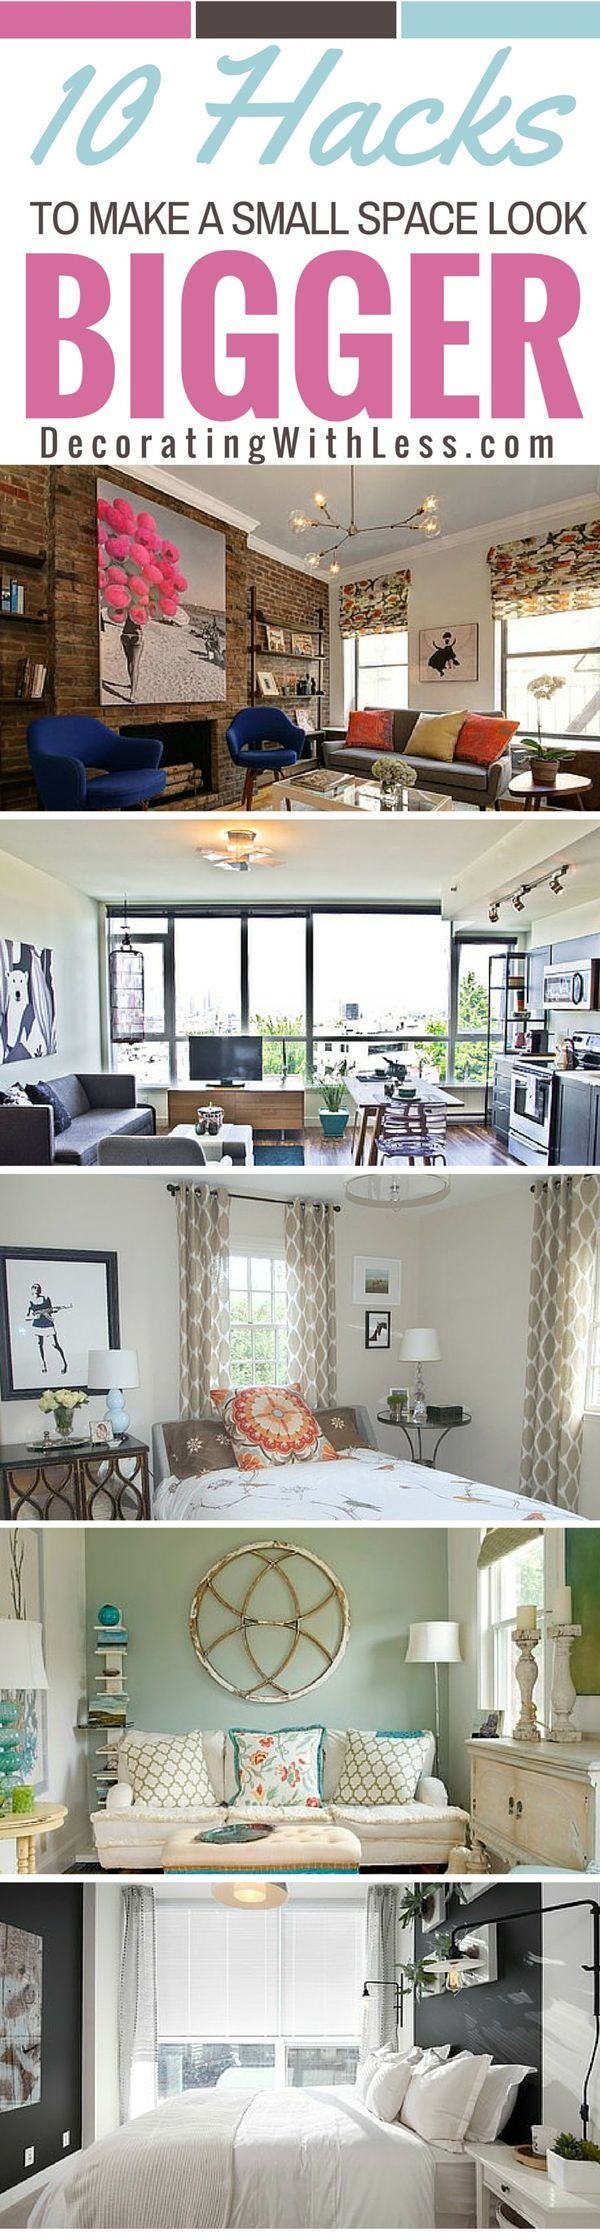 10 hacks to make a small space look bigger house a